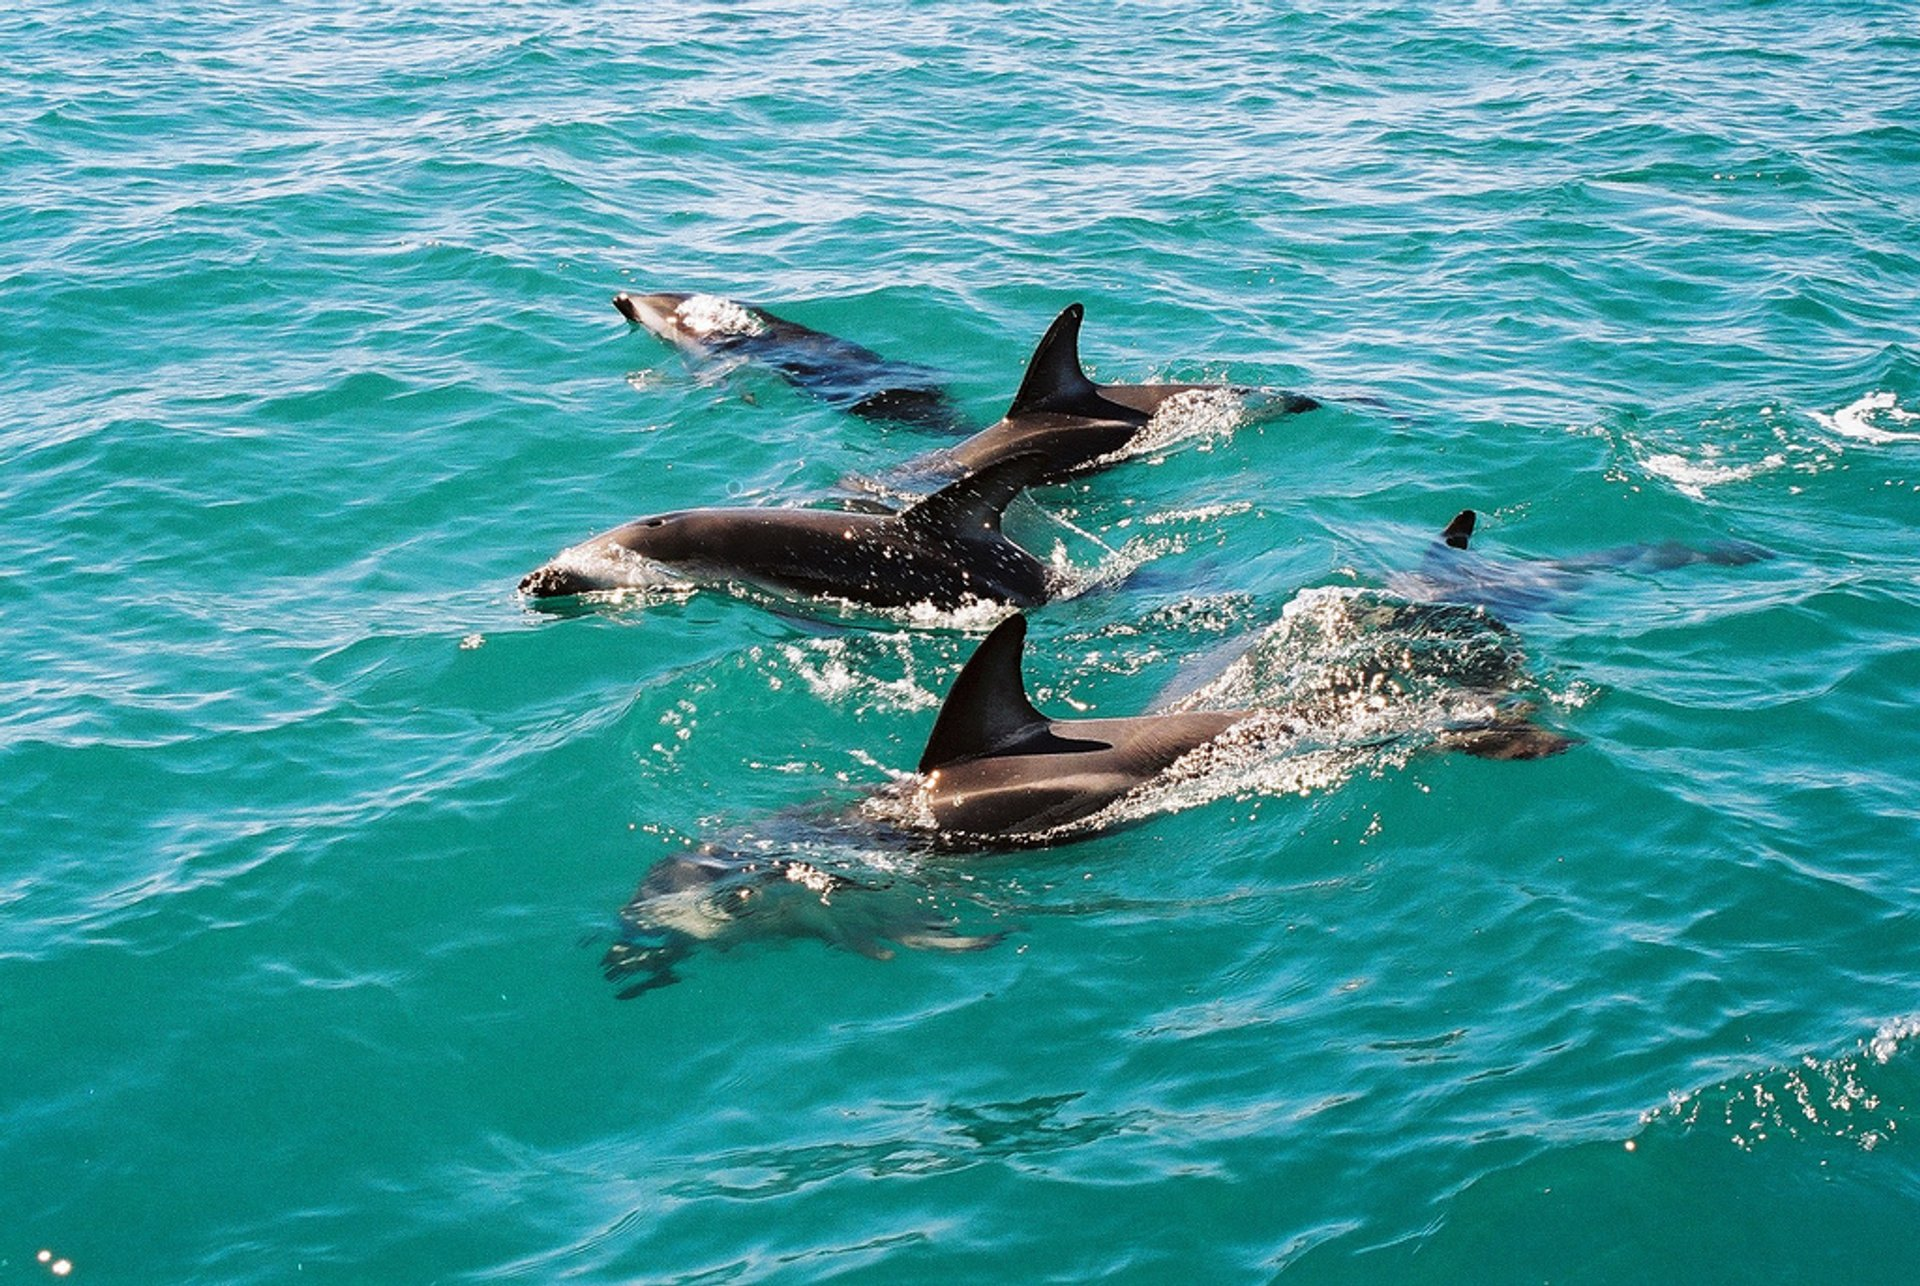 Dolphin Encounter in New Zealand 2019 - Best Time